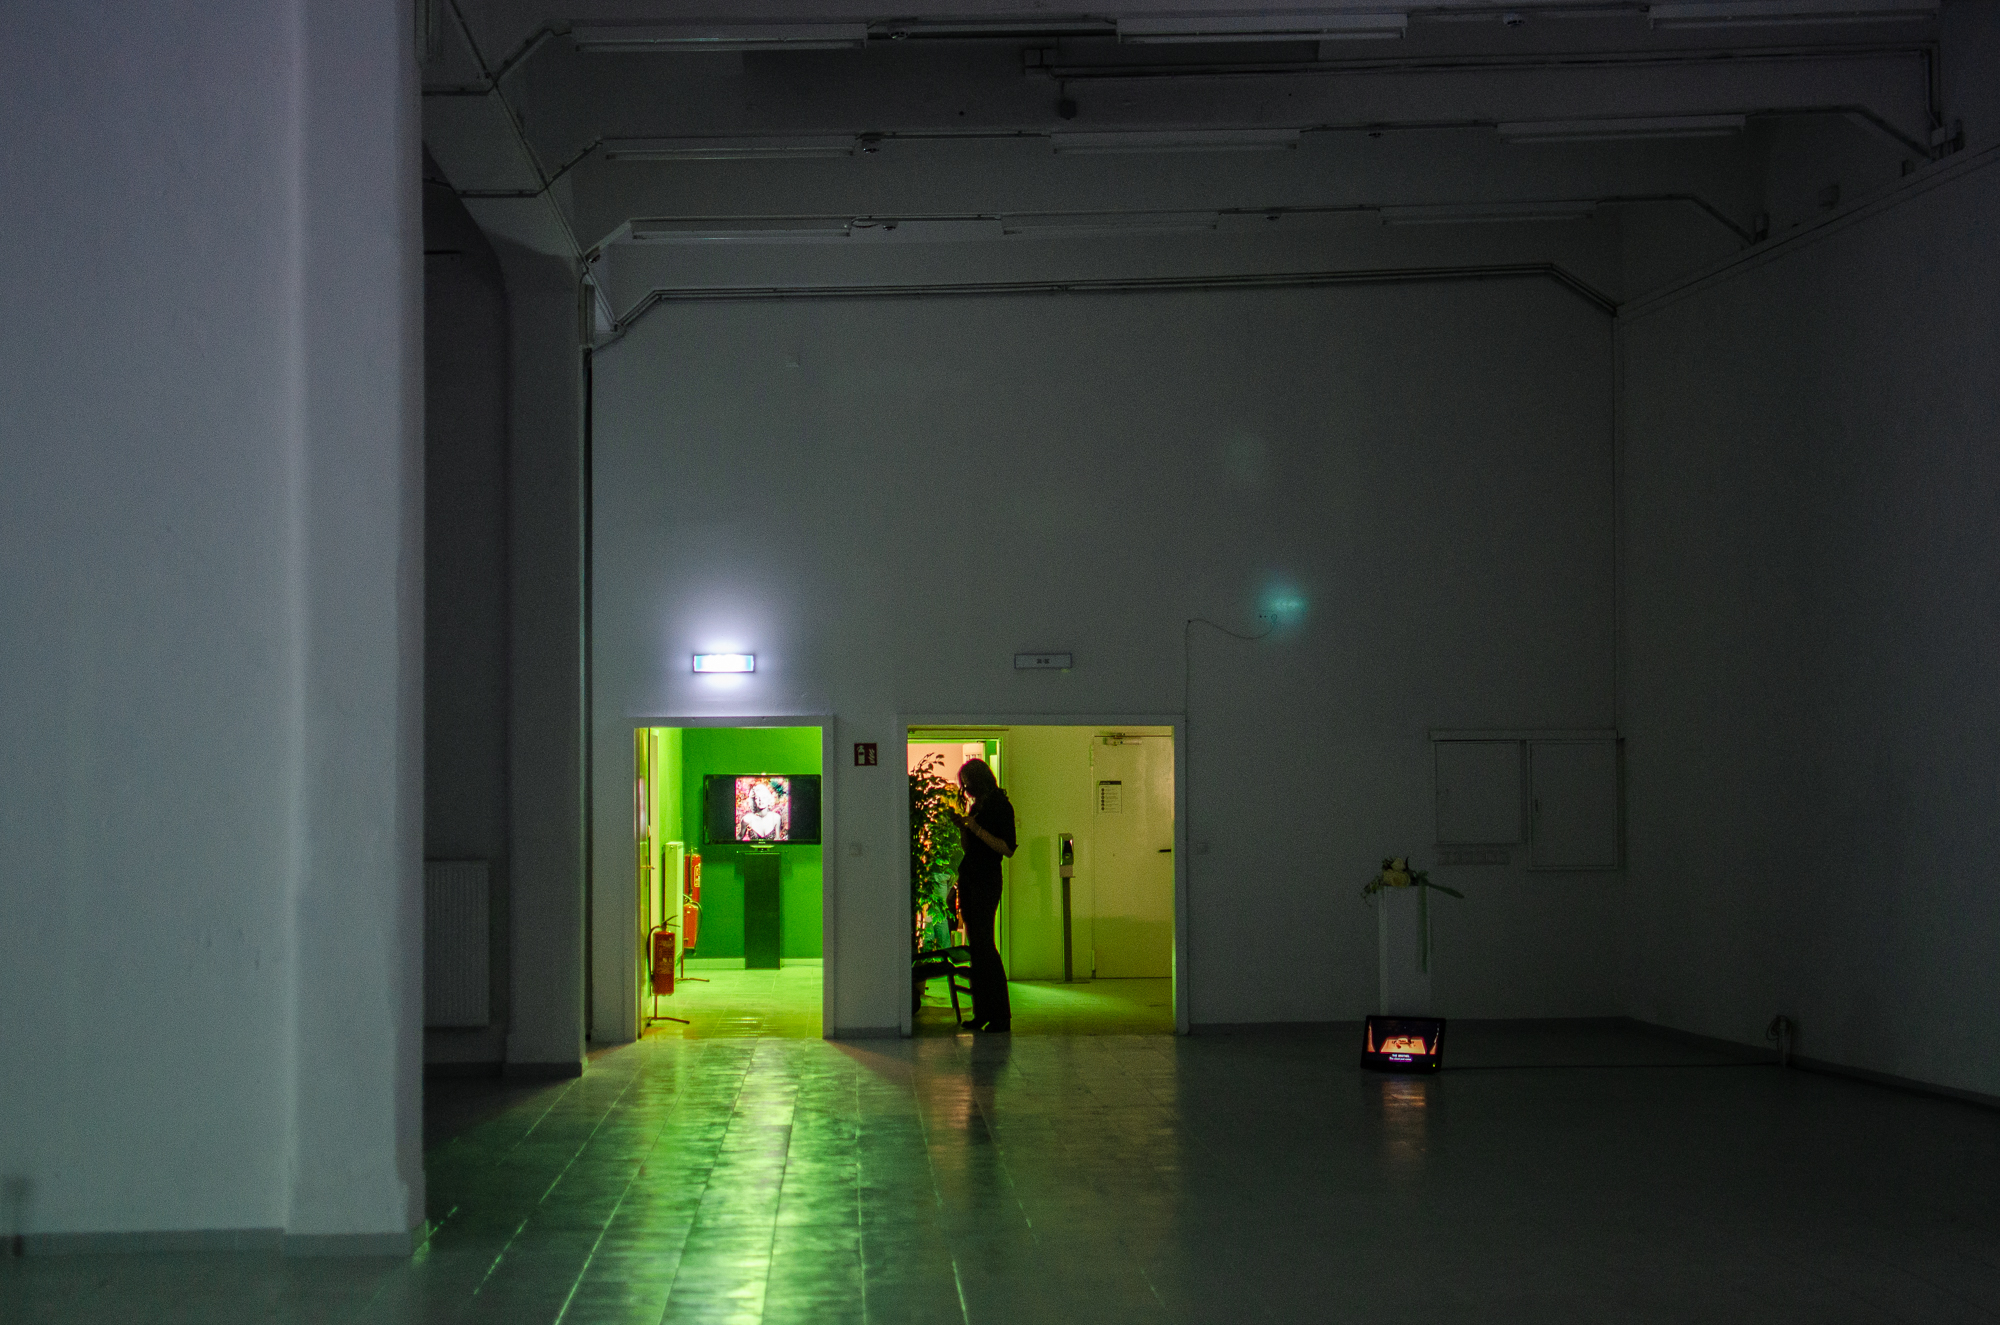 In-Escalation-ao-kunsthalle-PILOTENKUECHE-online-residency-vernissage-photos-Fanni-Papp-18